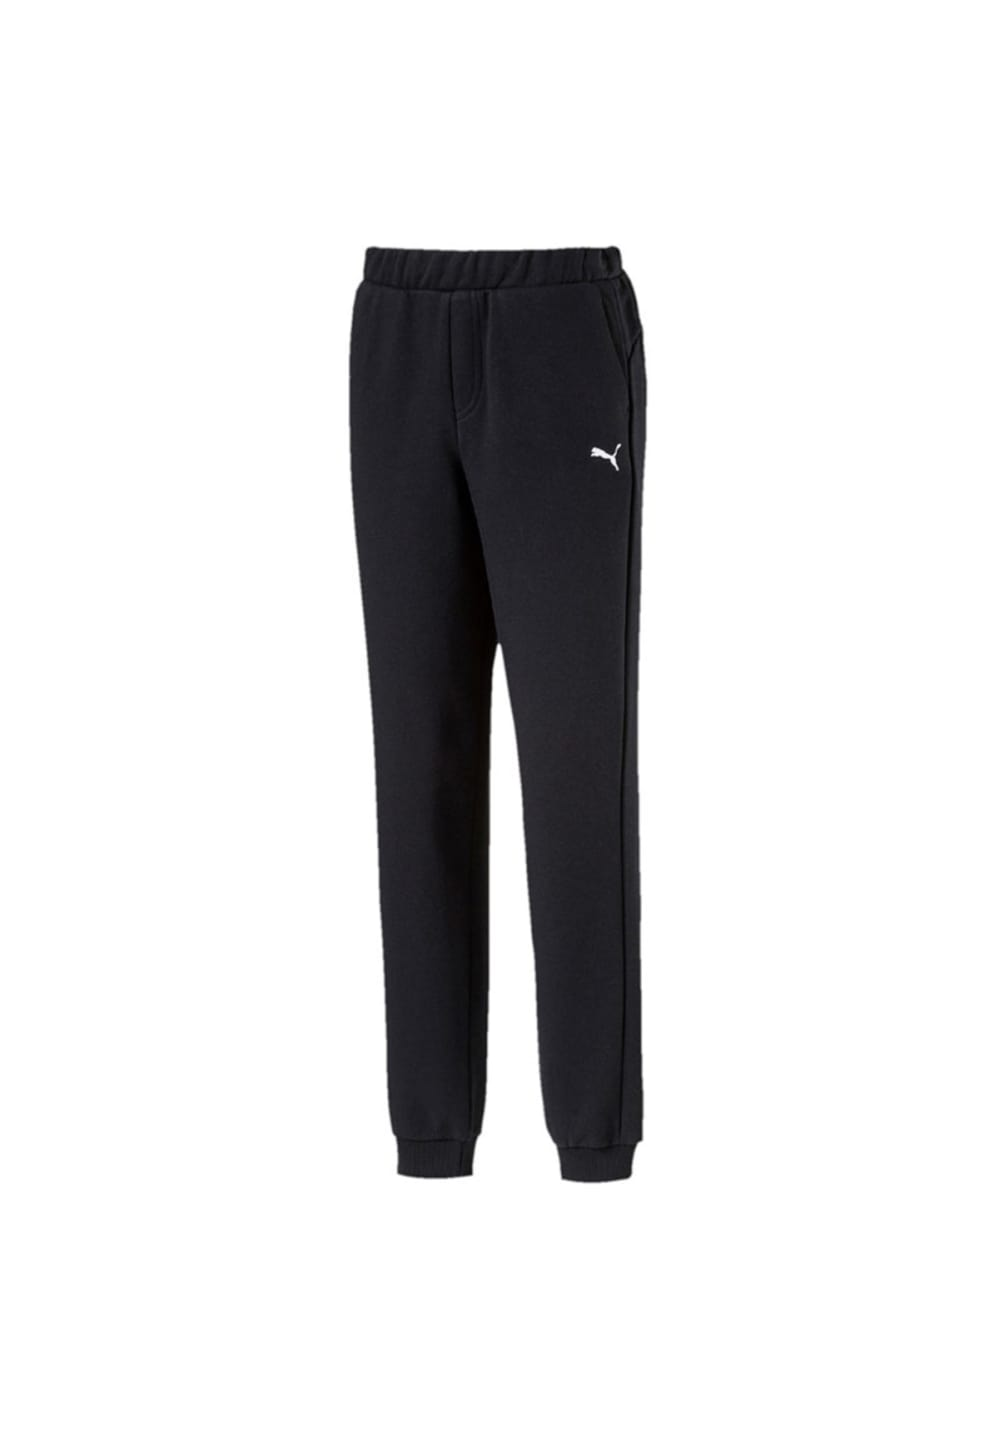 Puma Essential Sweat Pants Closed - Fitnesshosen für Herren - Schwarz